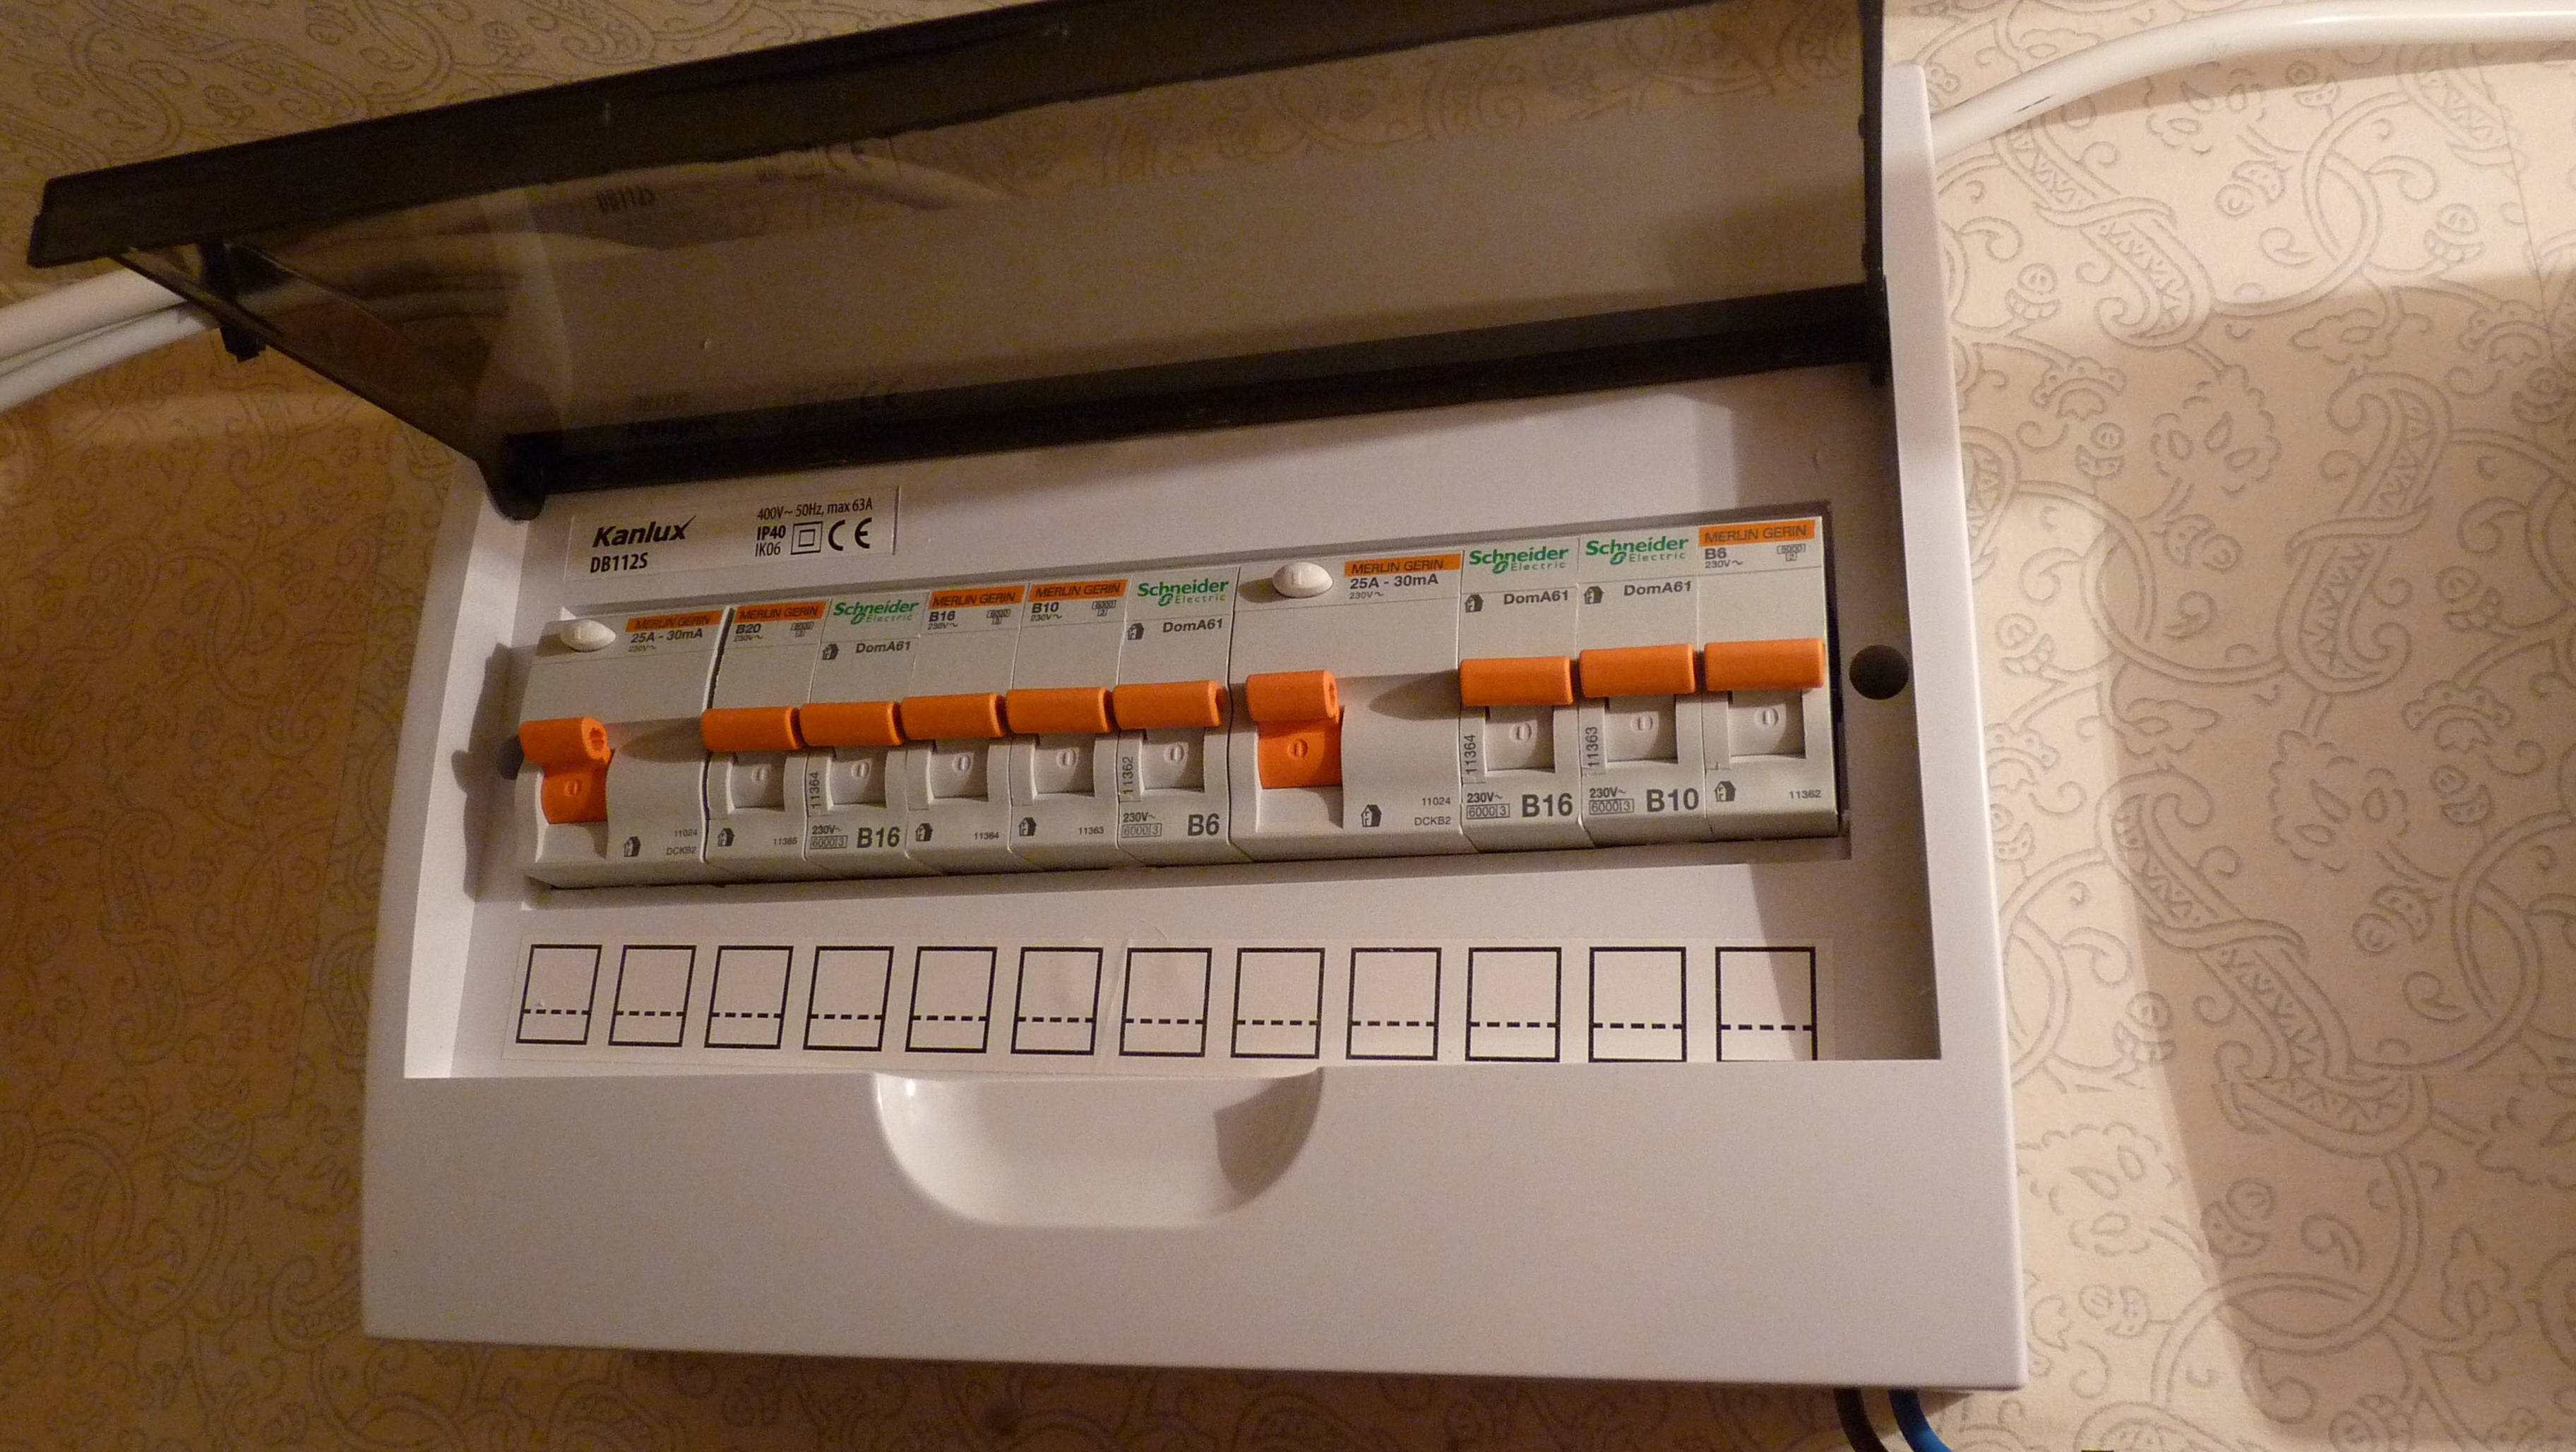 House Fuse Box Location Simple Wiring Diagram 86 Mustang Fuse Box Diagram  House Fuse Box Location